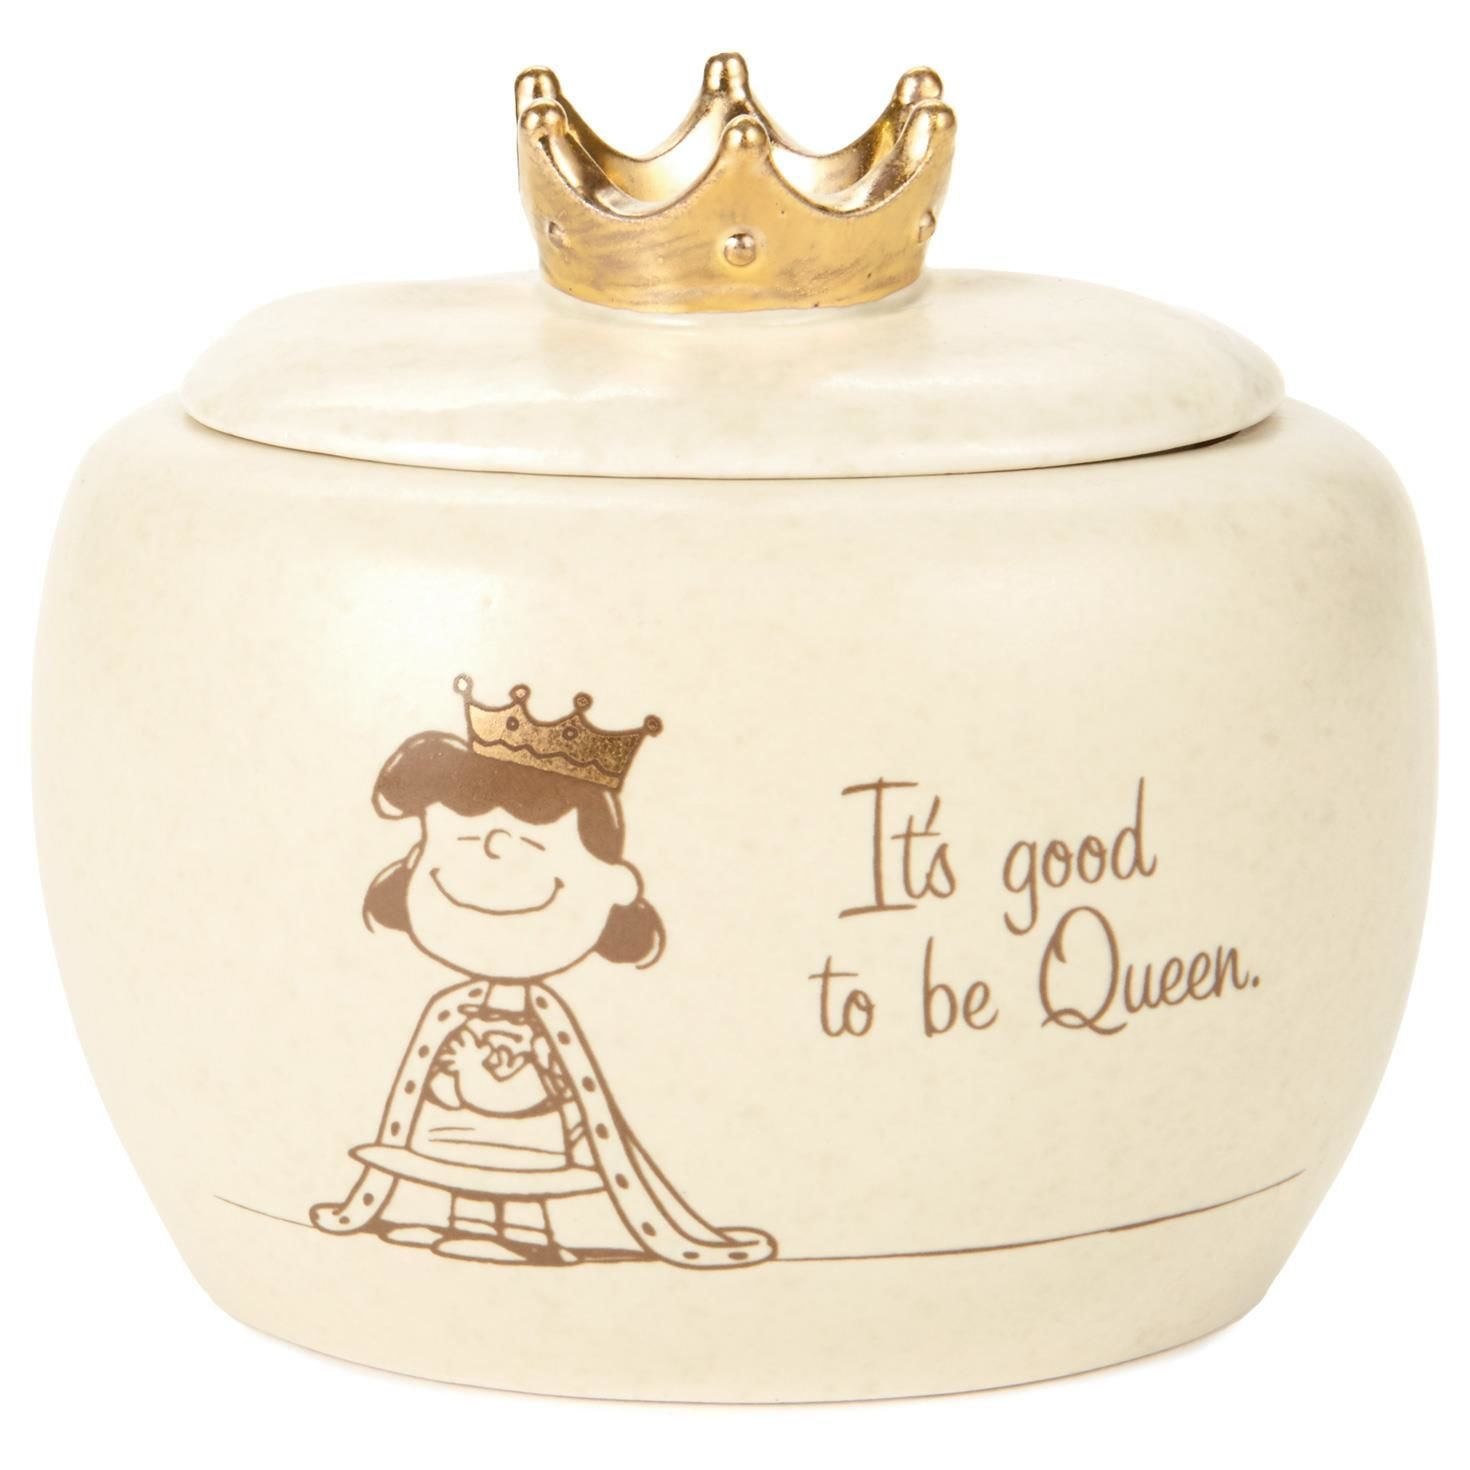 Hallmark Peanuts Lucy Queen Treasure Box, 4